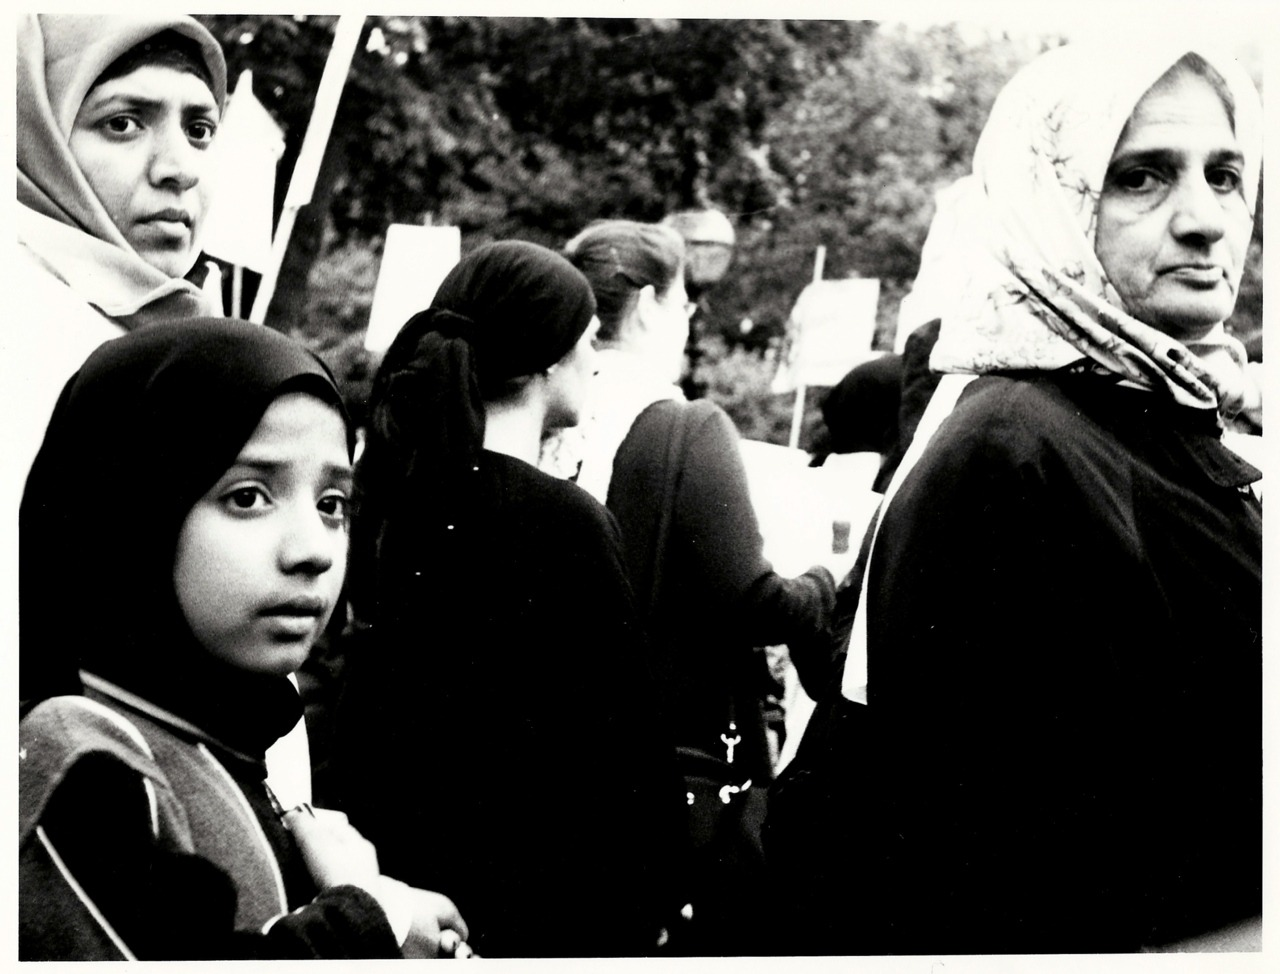 Children at Demonstrations, 2003-2005, London